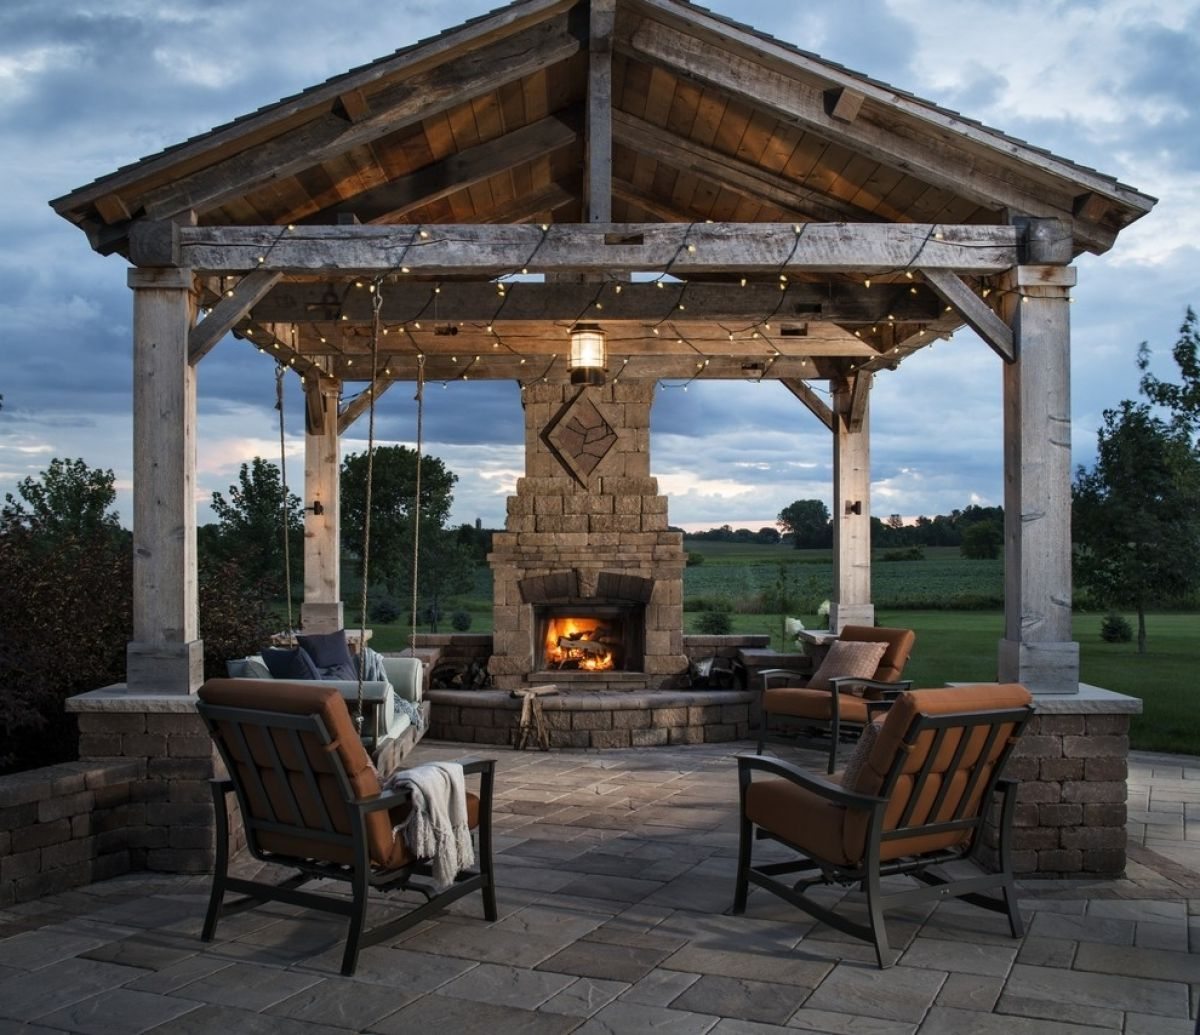 Beau Covered Gazebos For Patios | Gazebo IDeas